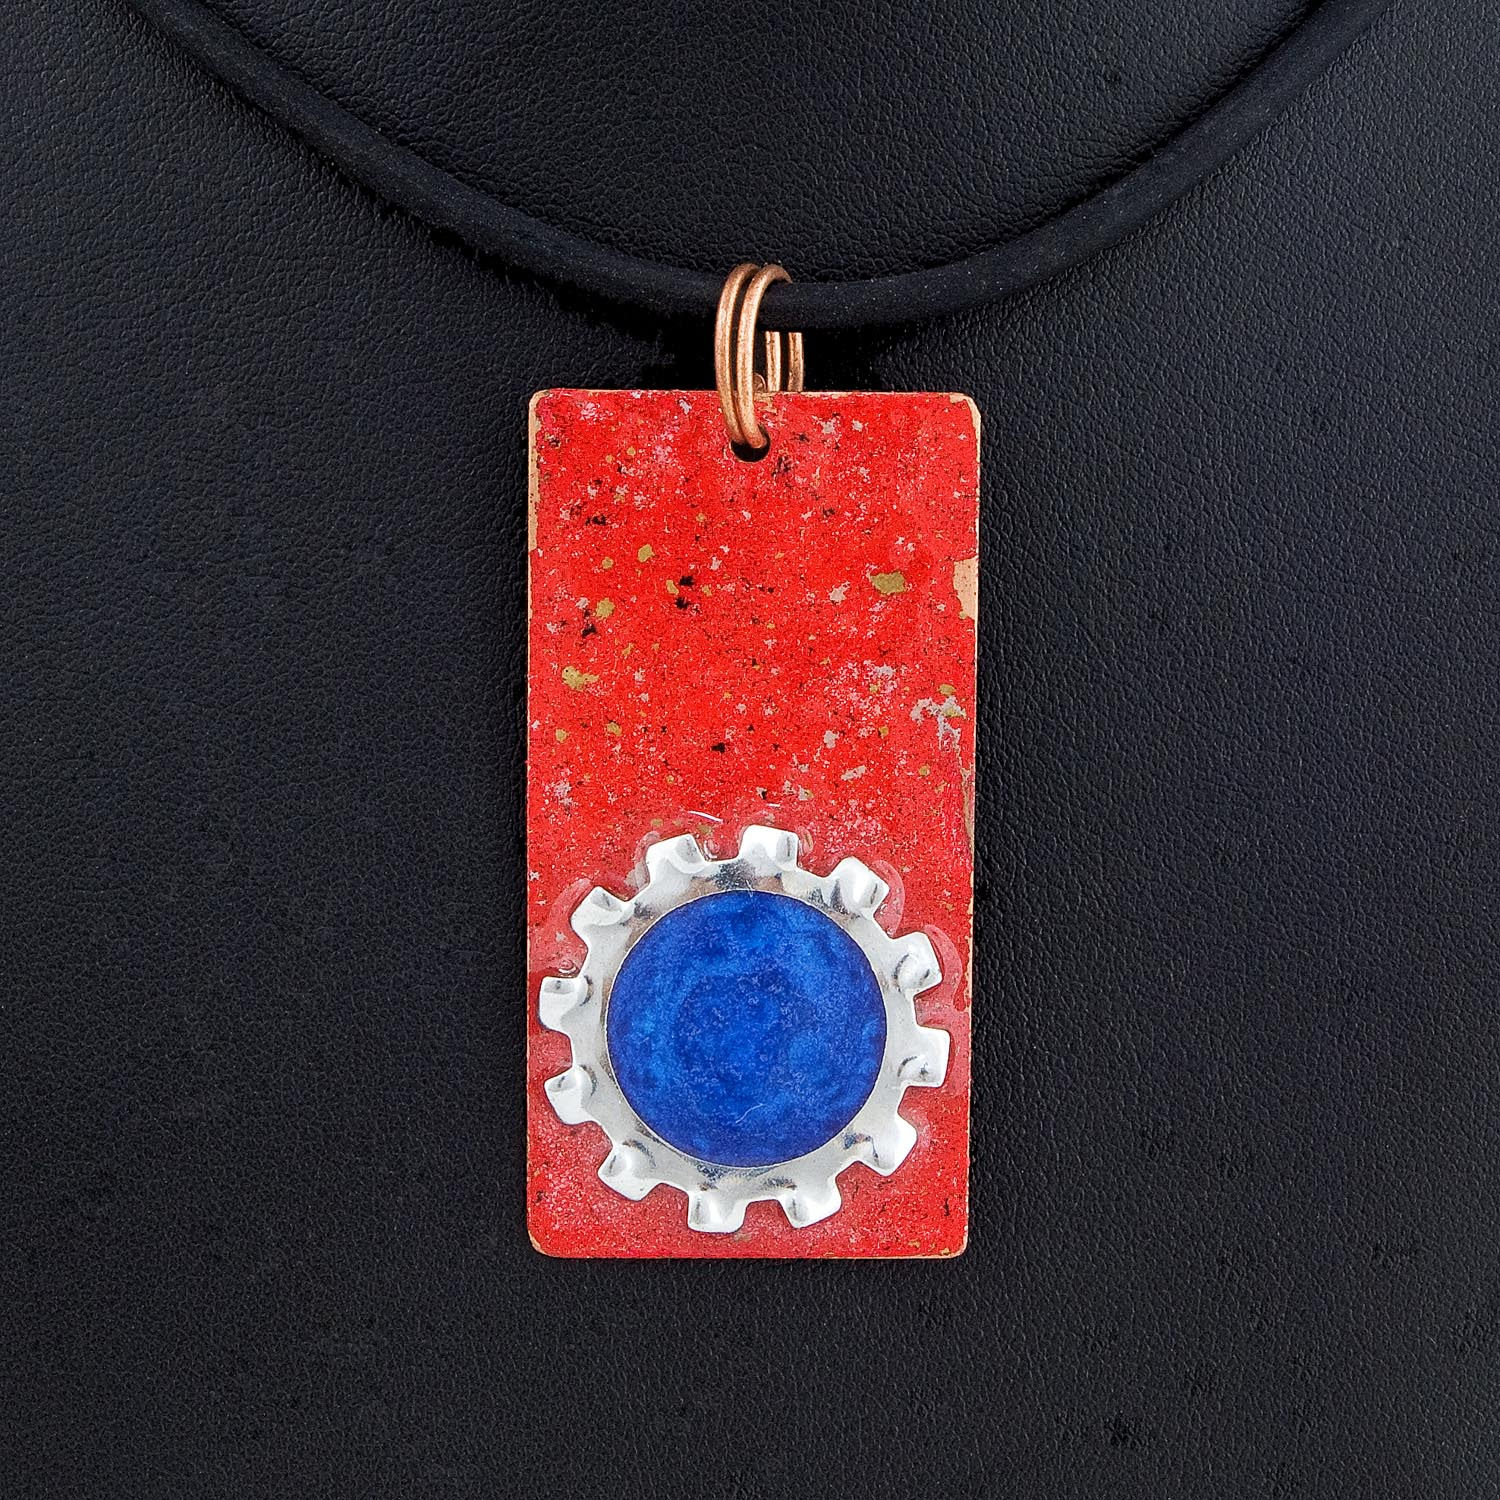 Enameled copper with a star washer bezel and blue mica dyed resin.